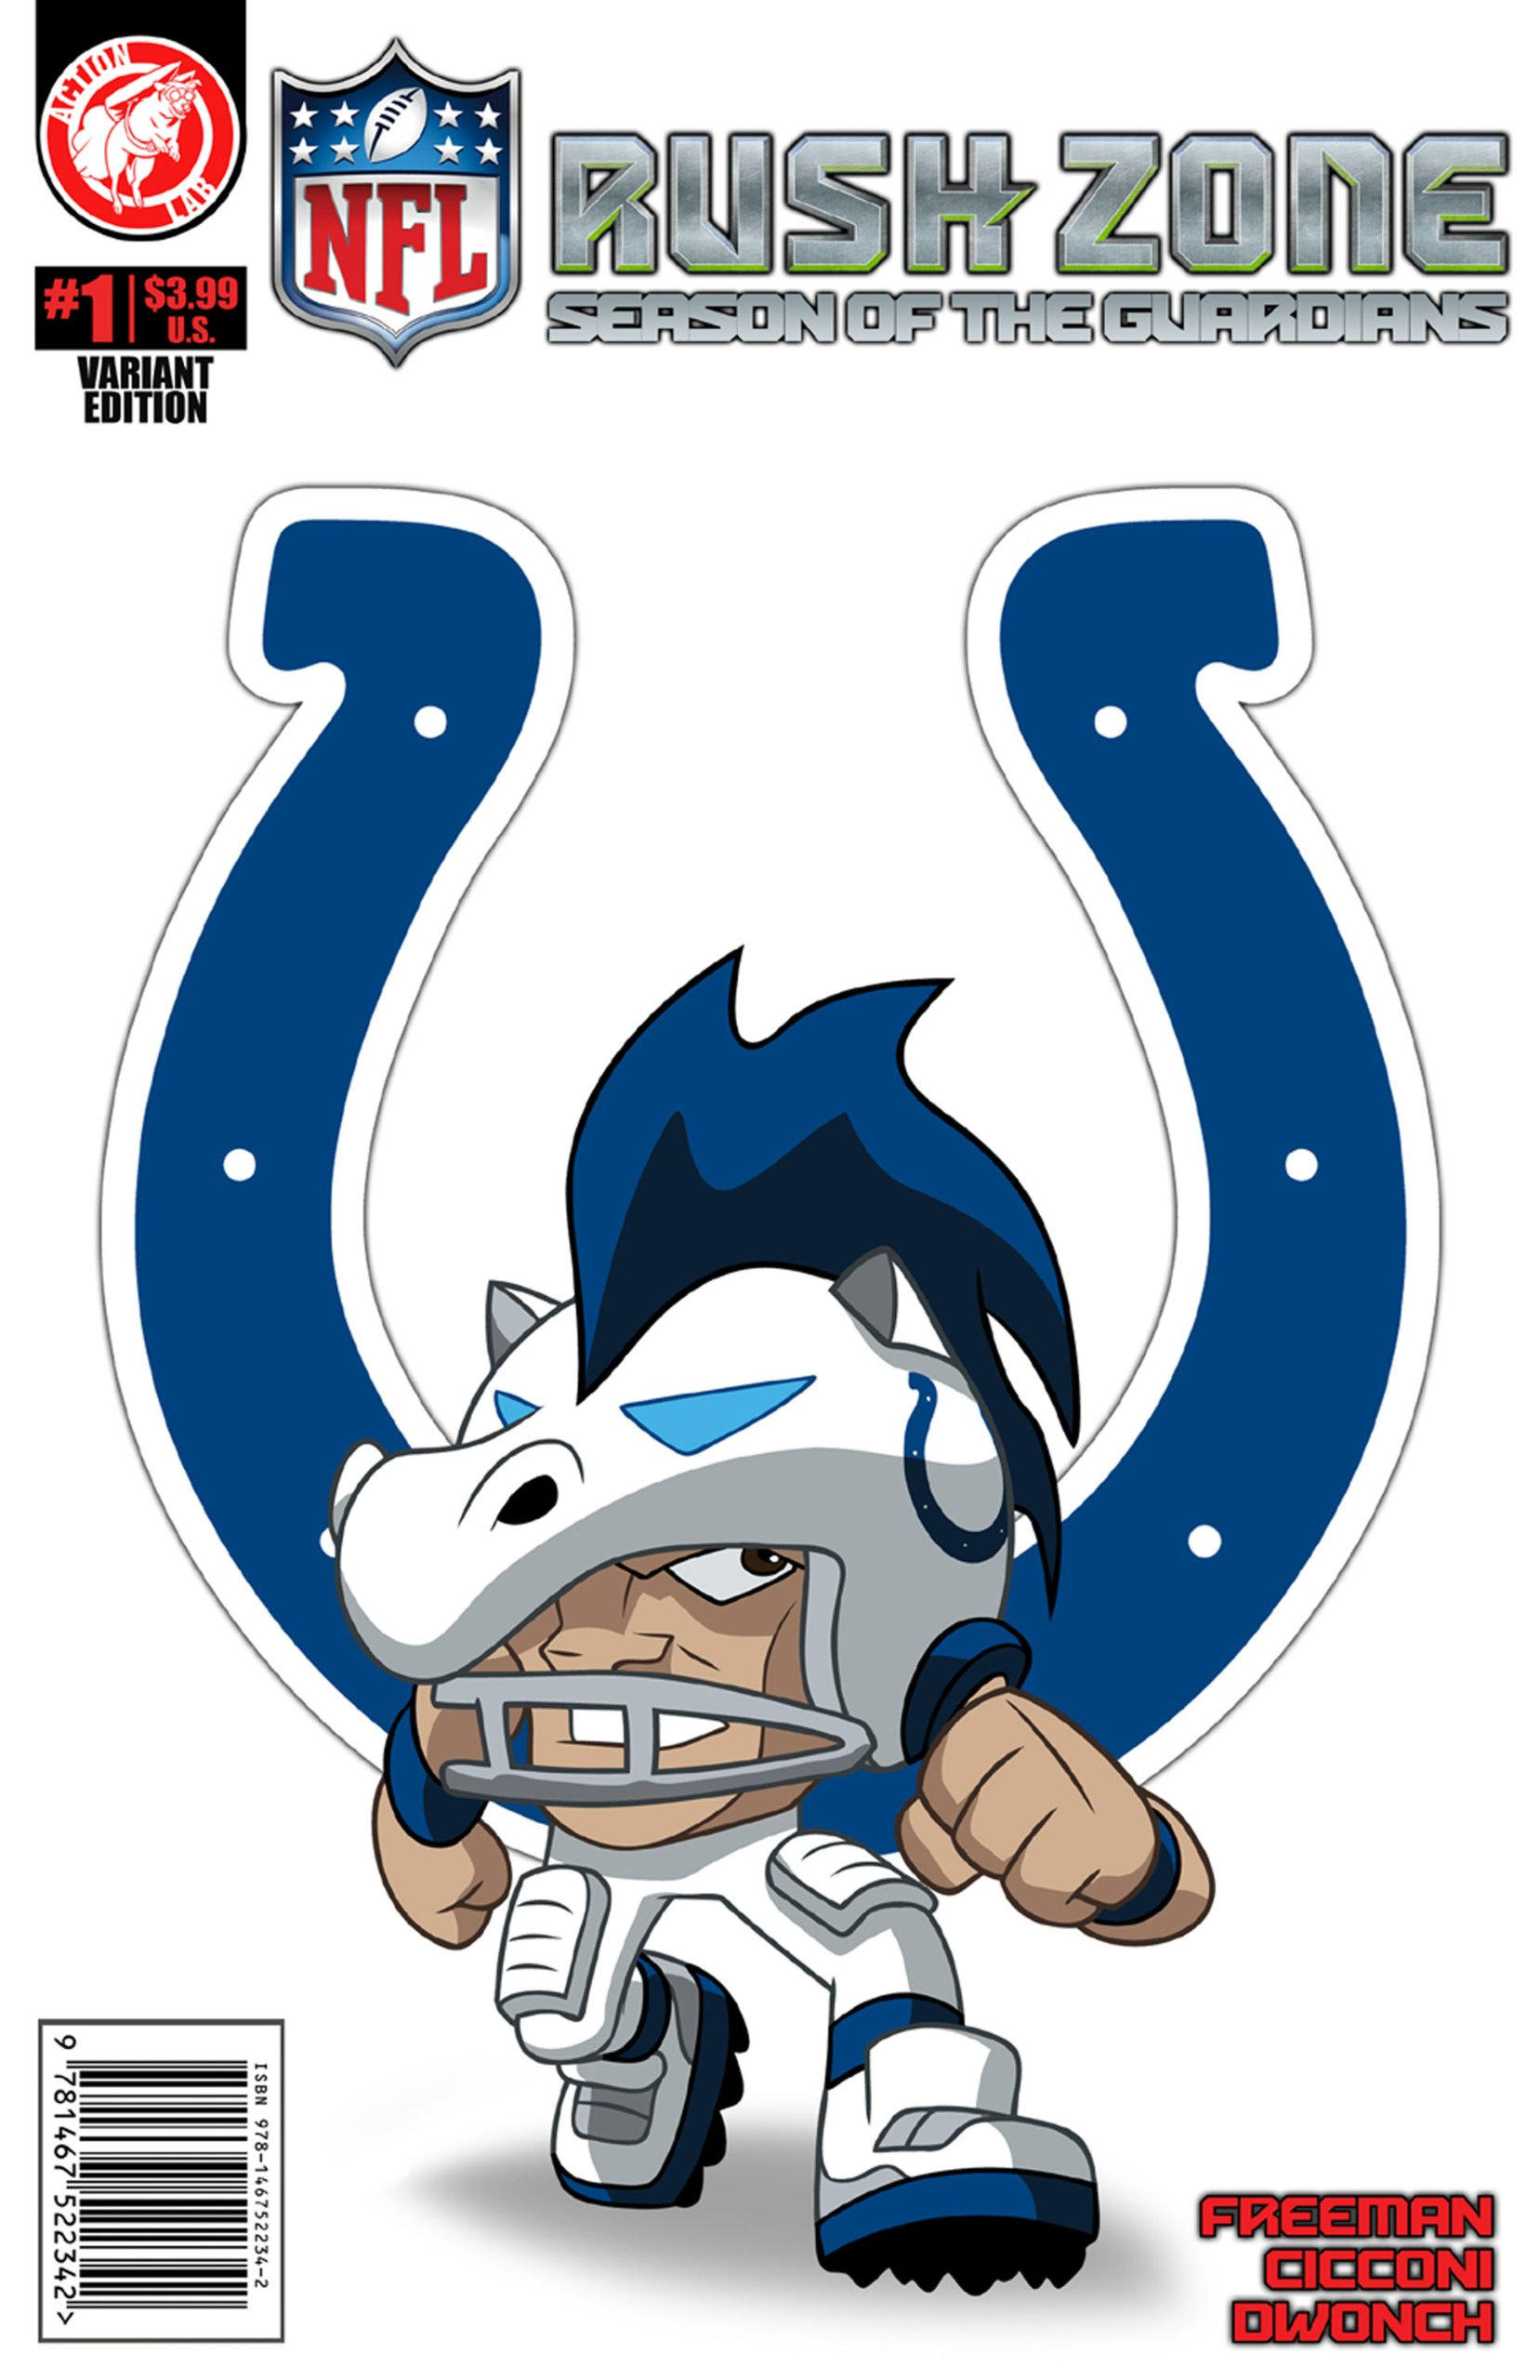 Nfl Rush Zone Season Of The Guardians 1 Indianapolis Colts Cover Freeman Kevin Goodwin M 9781939352101 Amazon Com Books